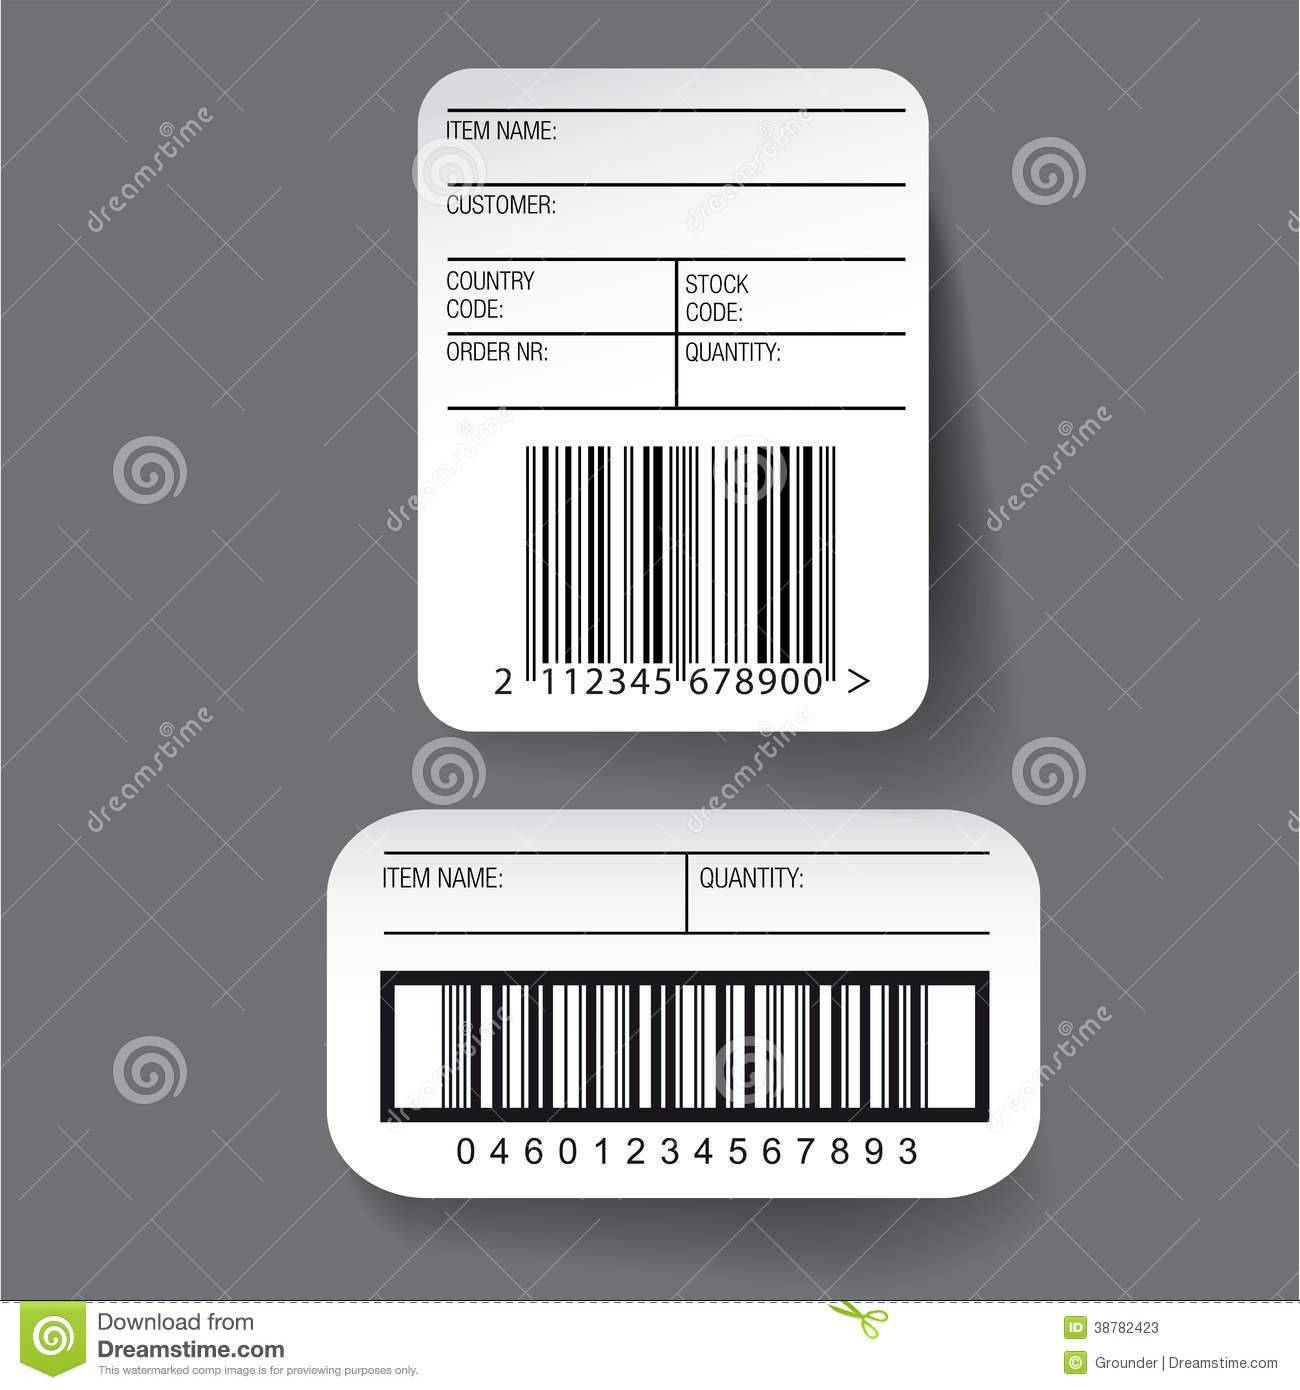 Upc Barcode Label Template